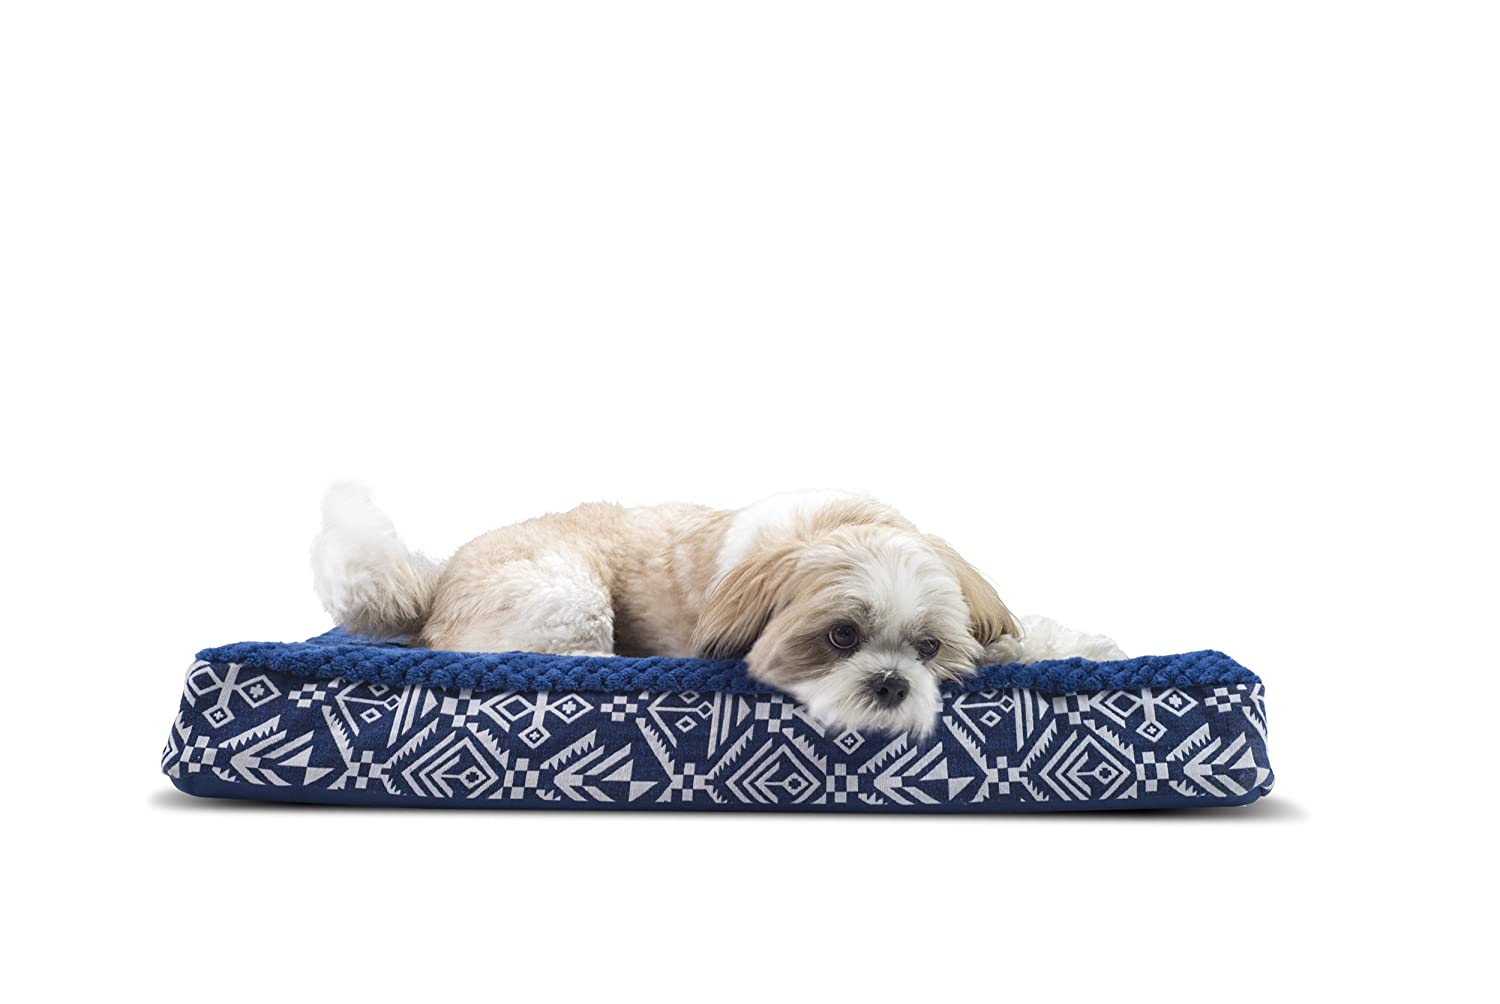 FurHaven Pet Dog Bed   Deluxe Orthopedic Plush Kilim Mattress Pet Bed for Dogs & Cats, Southwest Indigo, Medium